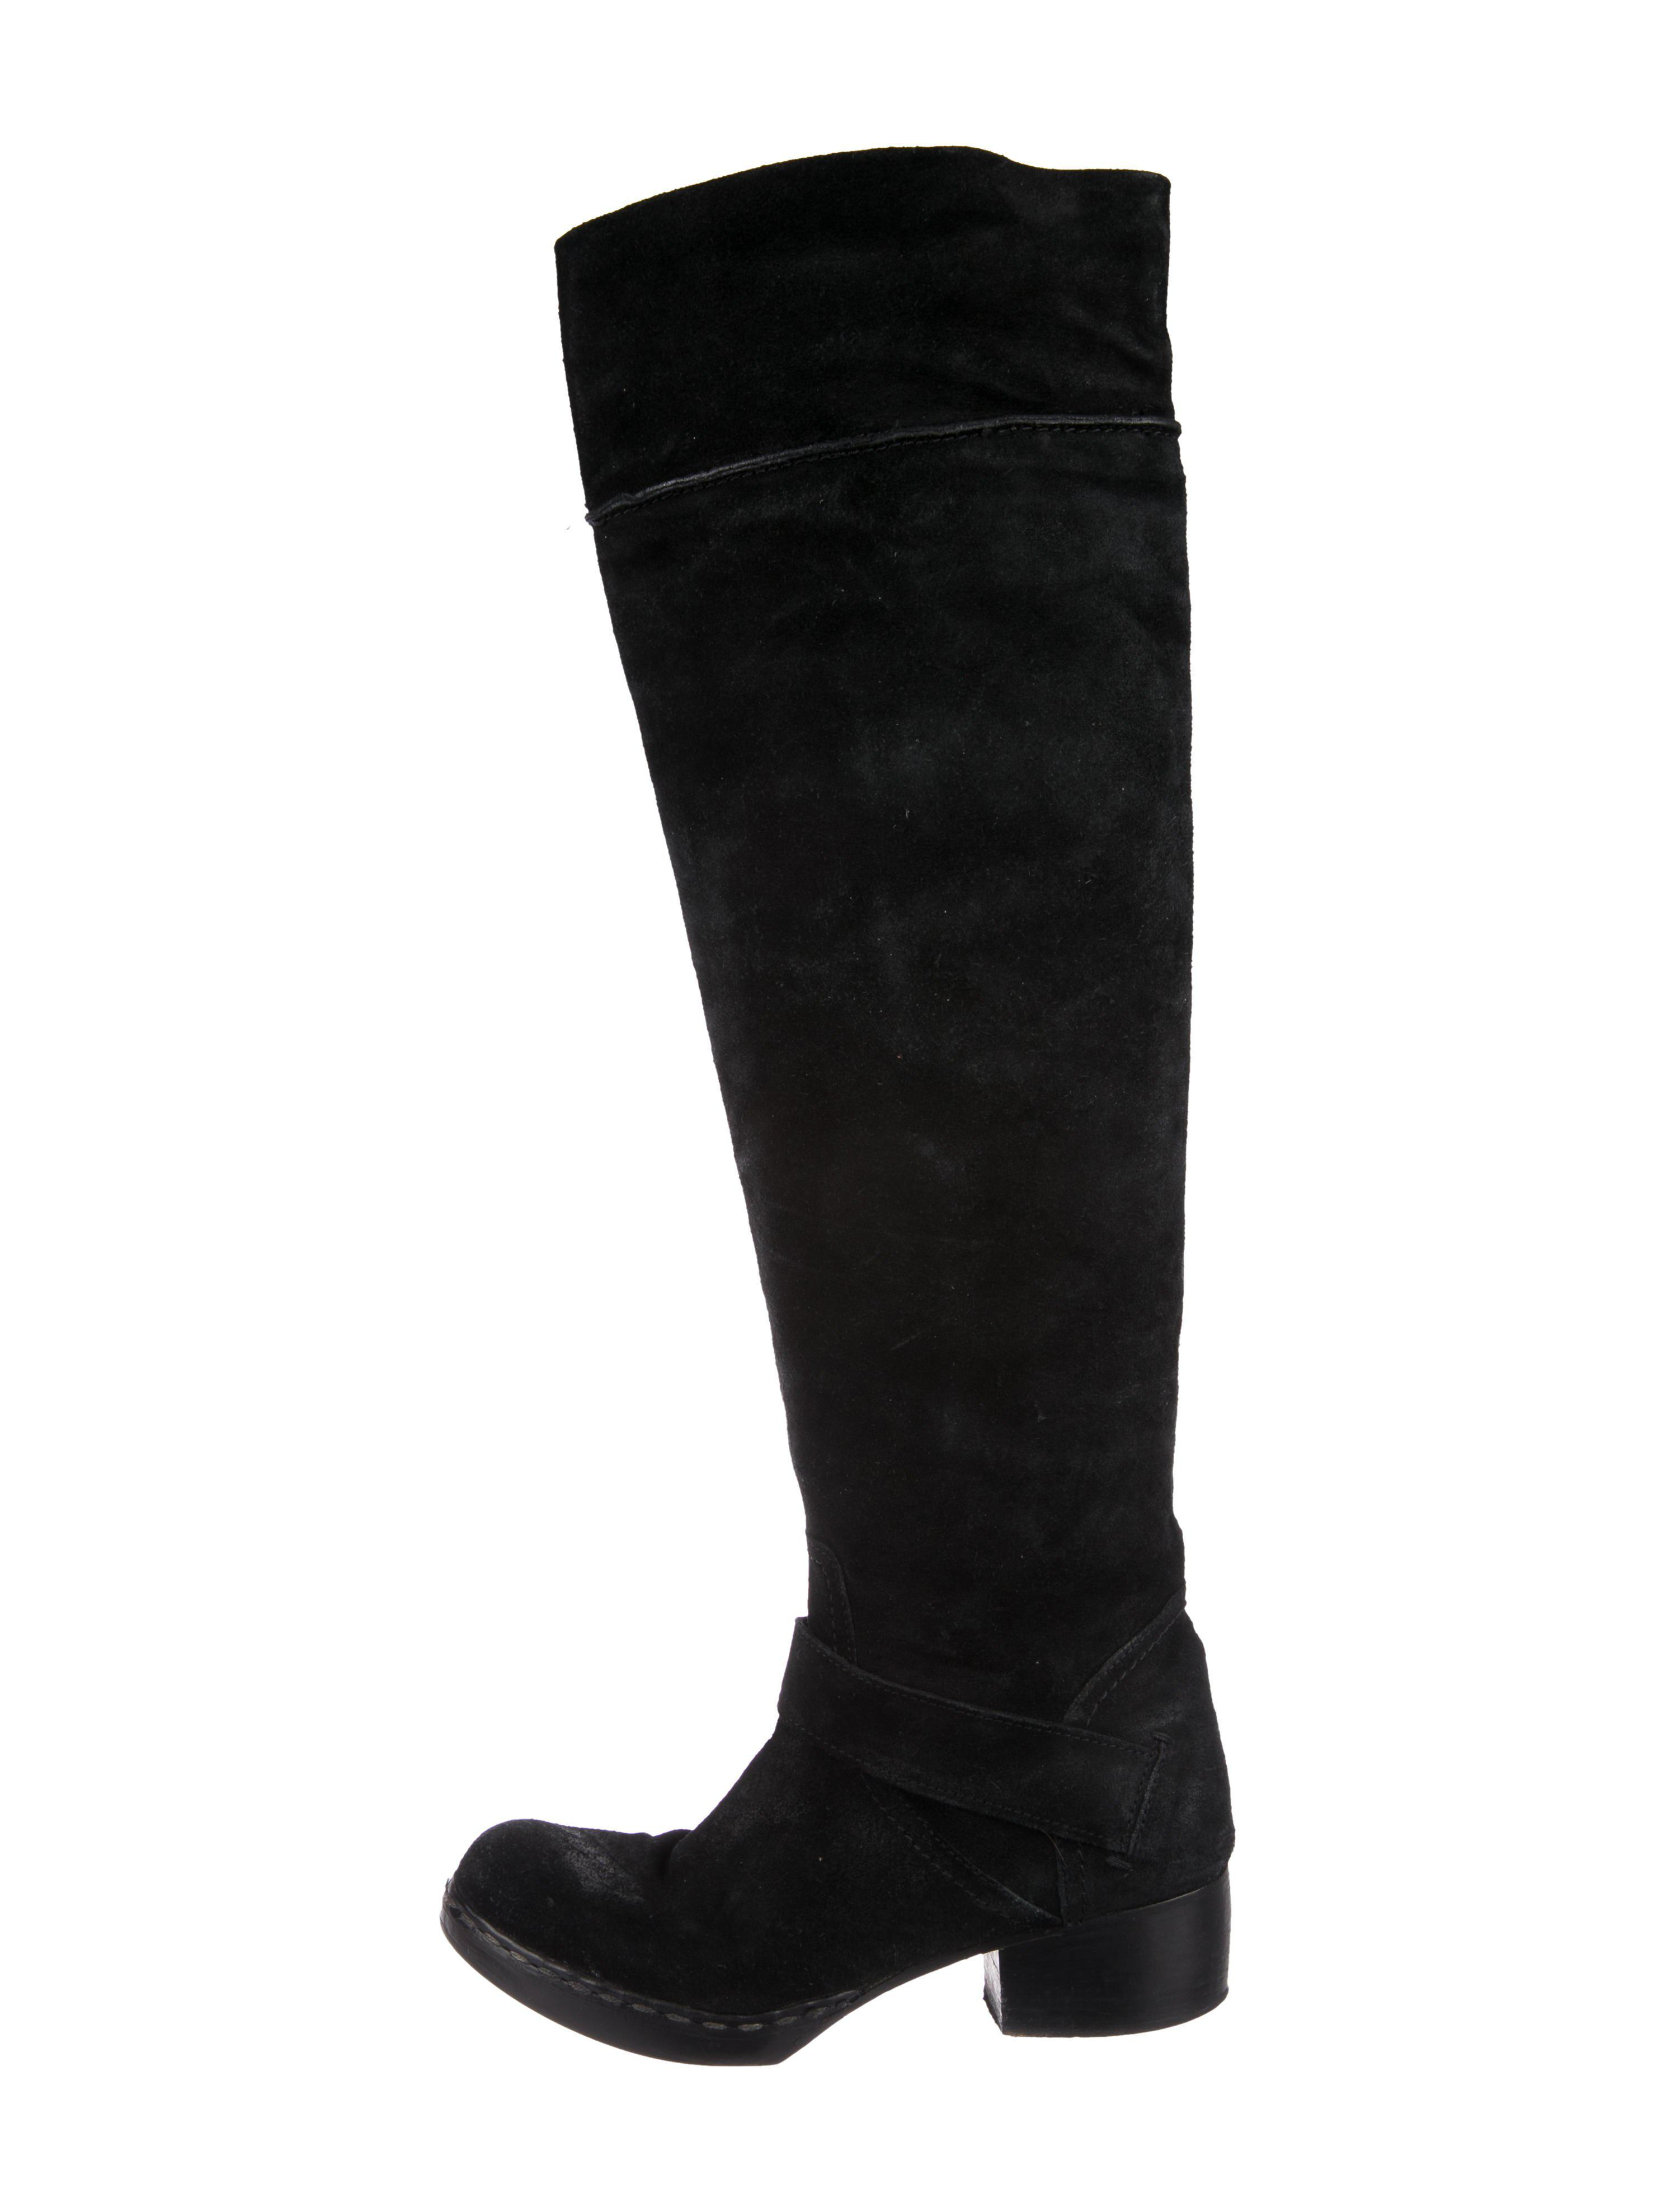 Costume National Suede Over-The-Knee Boots sale original sekiKDs